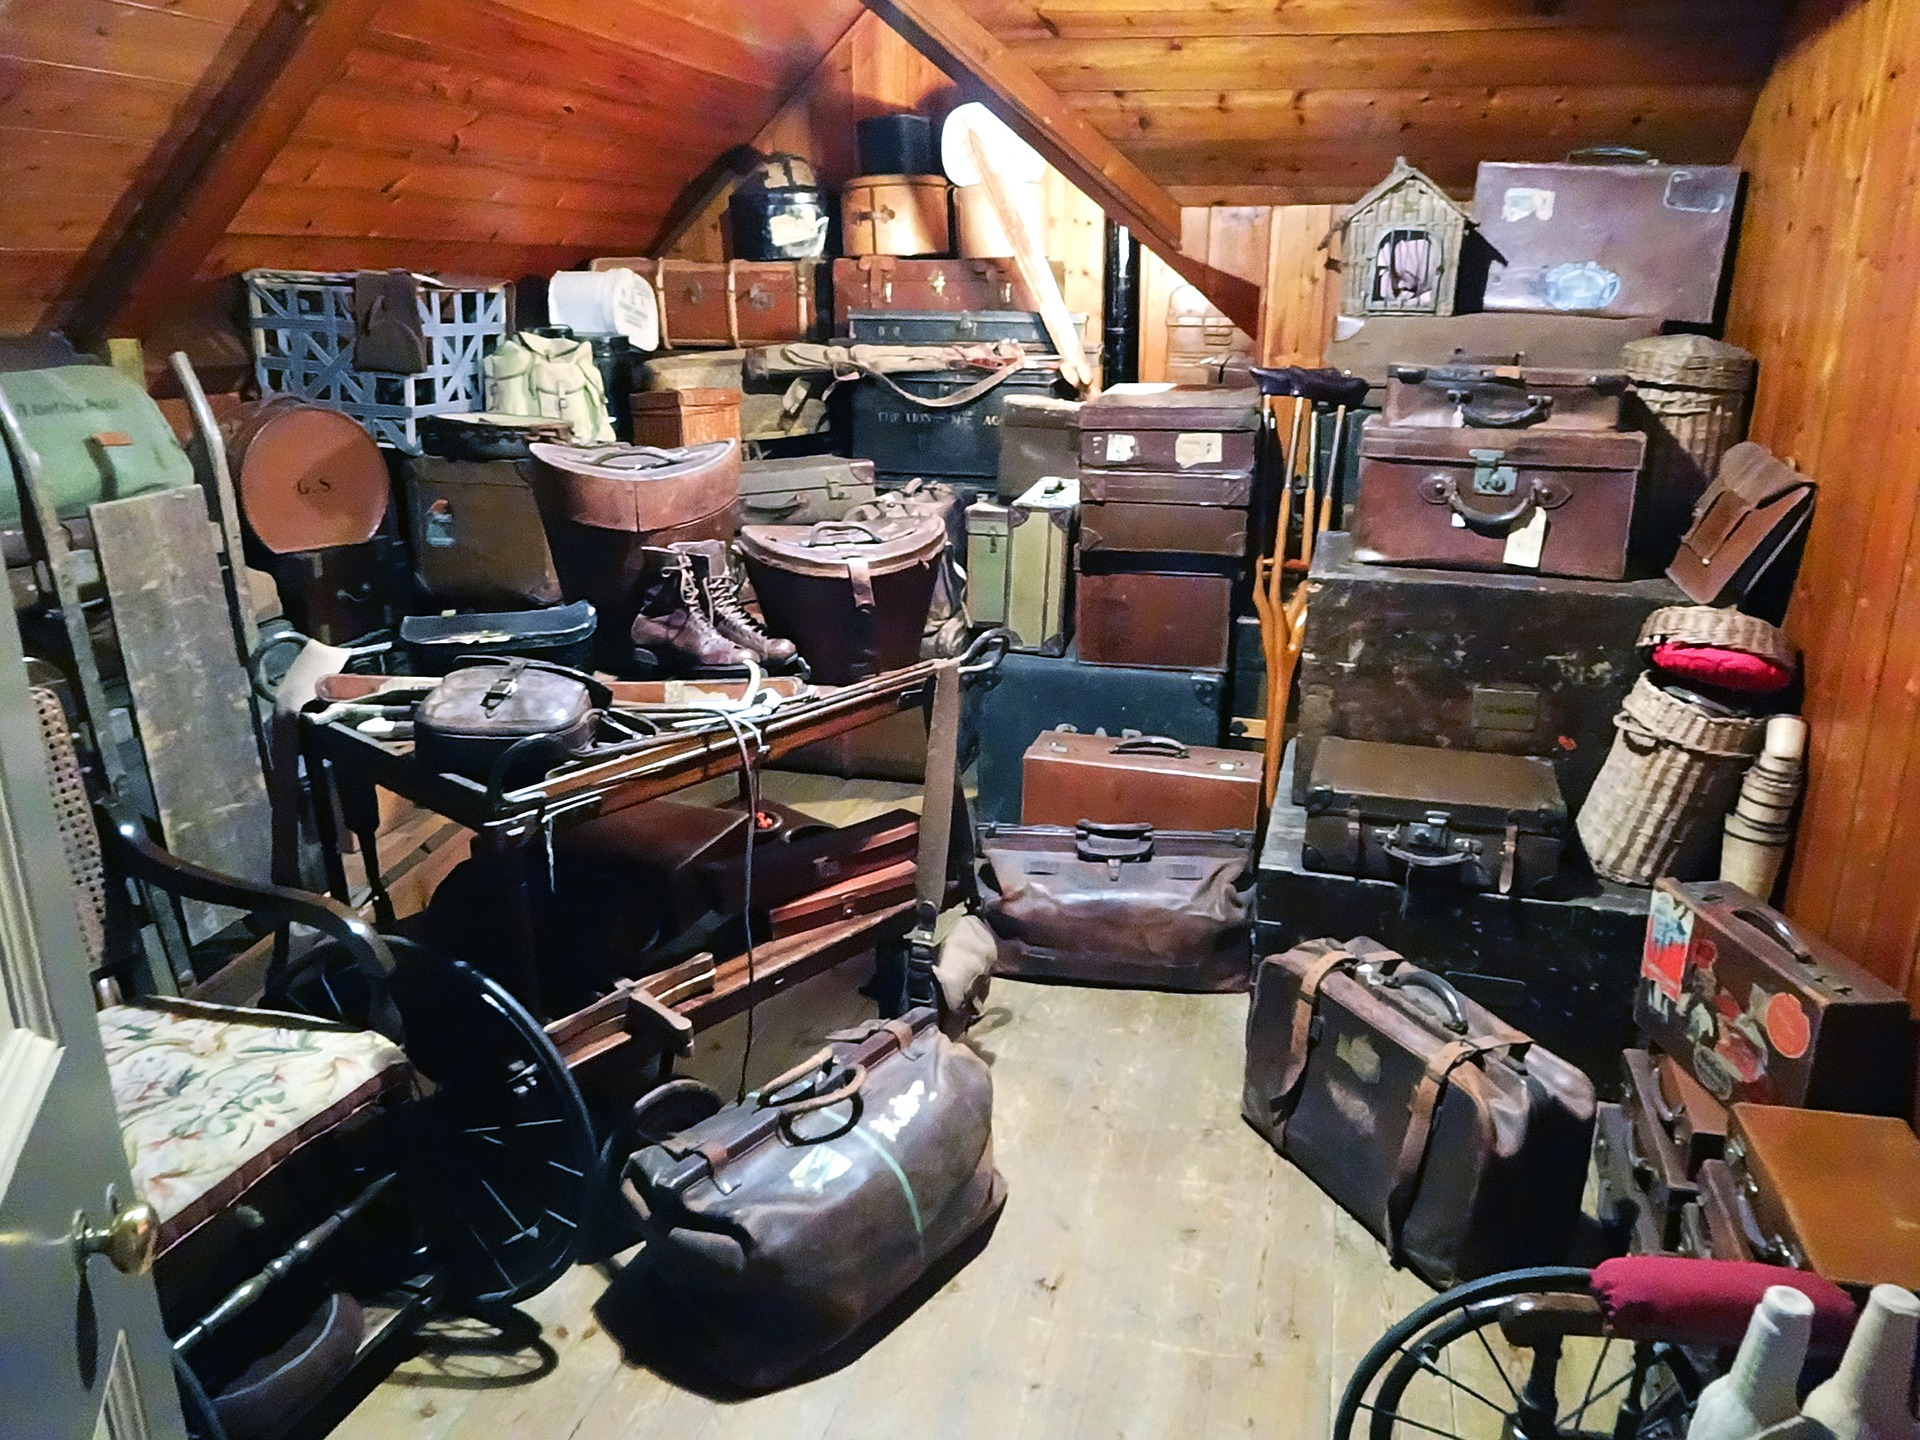 Image: Cluttered storage room with suitcases and bags